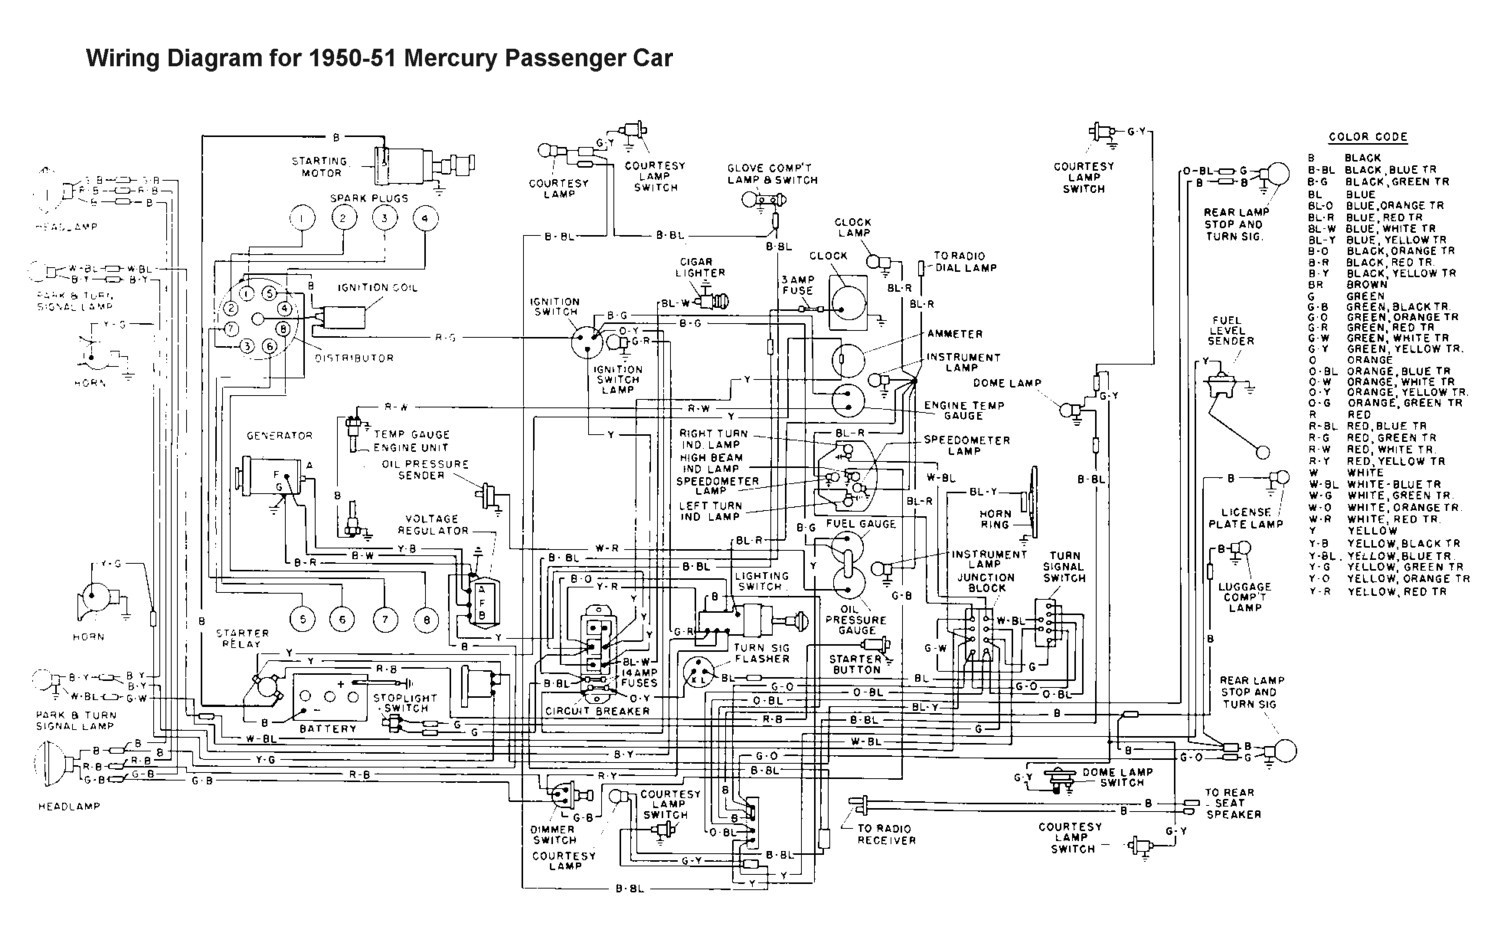 Flathead Electrical Wiring Diagrams Mallory Ford For 1950 51 Mercury Car